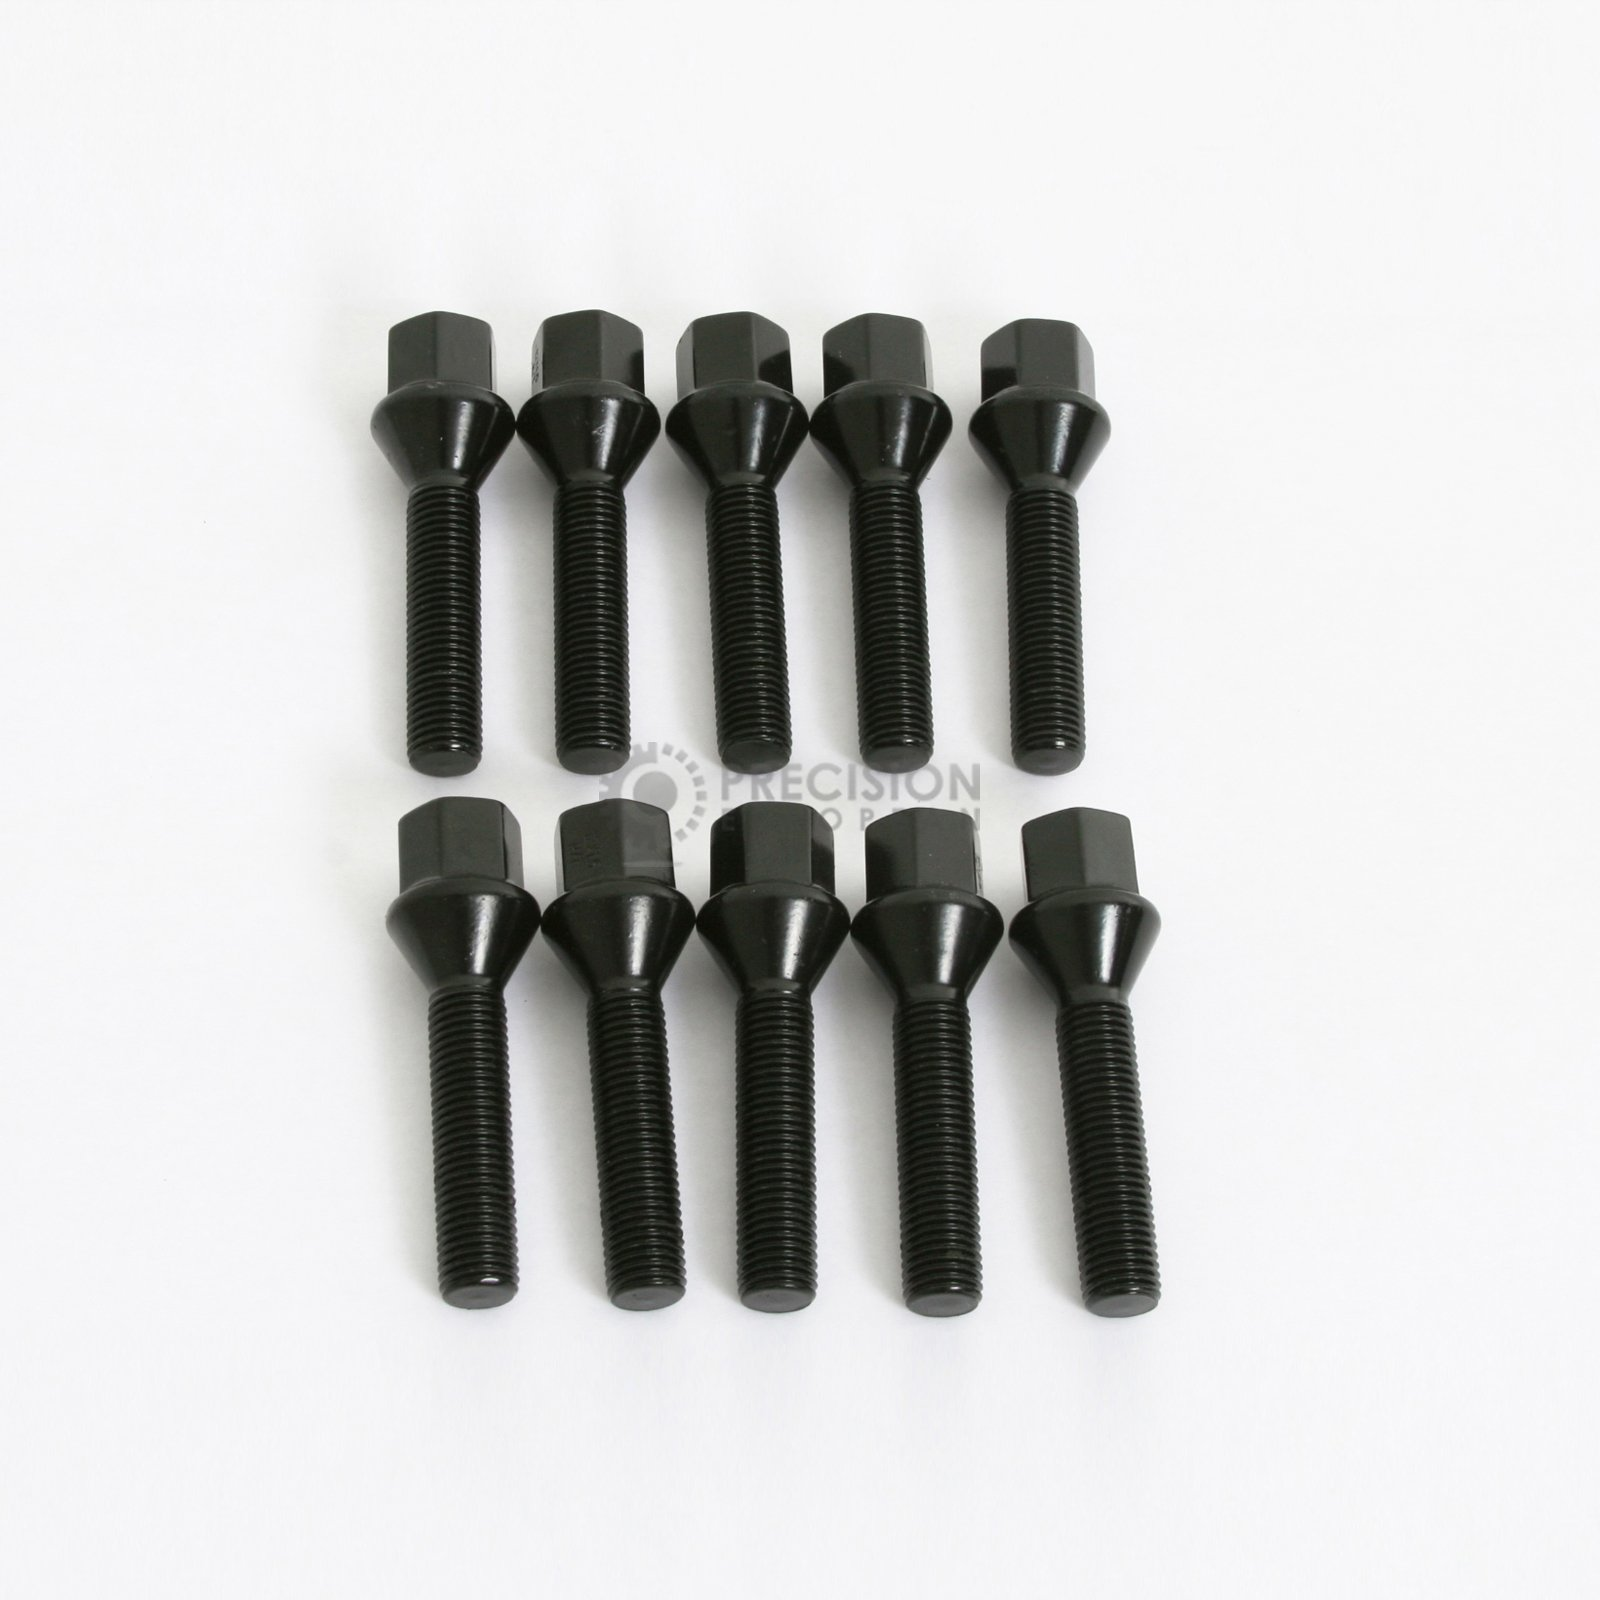 (10) Extended Black Lug Bolts 12x1.5 (53mm Shank Length) Cone Seat for many BMW Vehicles: 128i 135i 318i 320i 325i 328i 335i M3 525i 528i 530i 535i M5 Z3 Z4 E36 E46 E60 E90 E92 E93